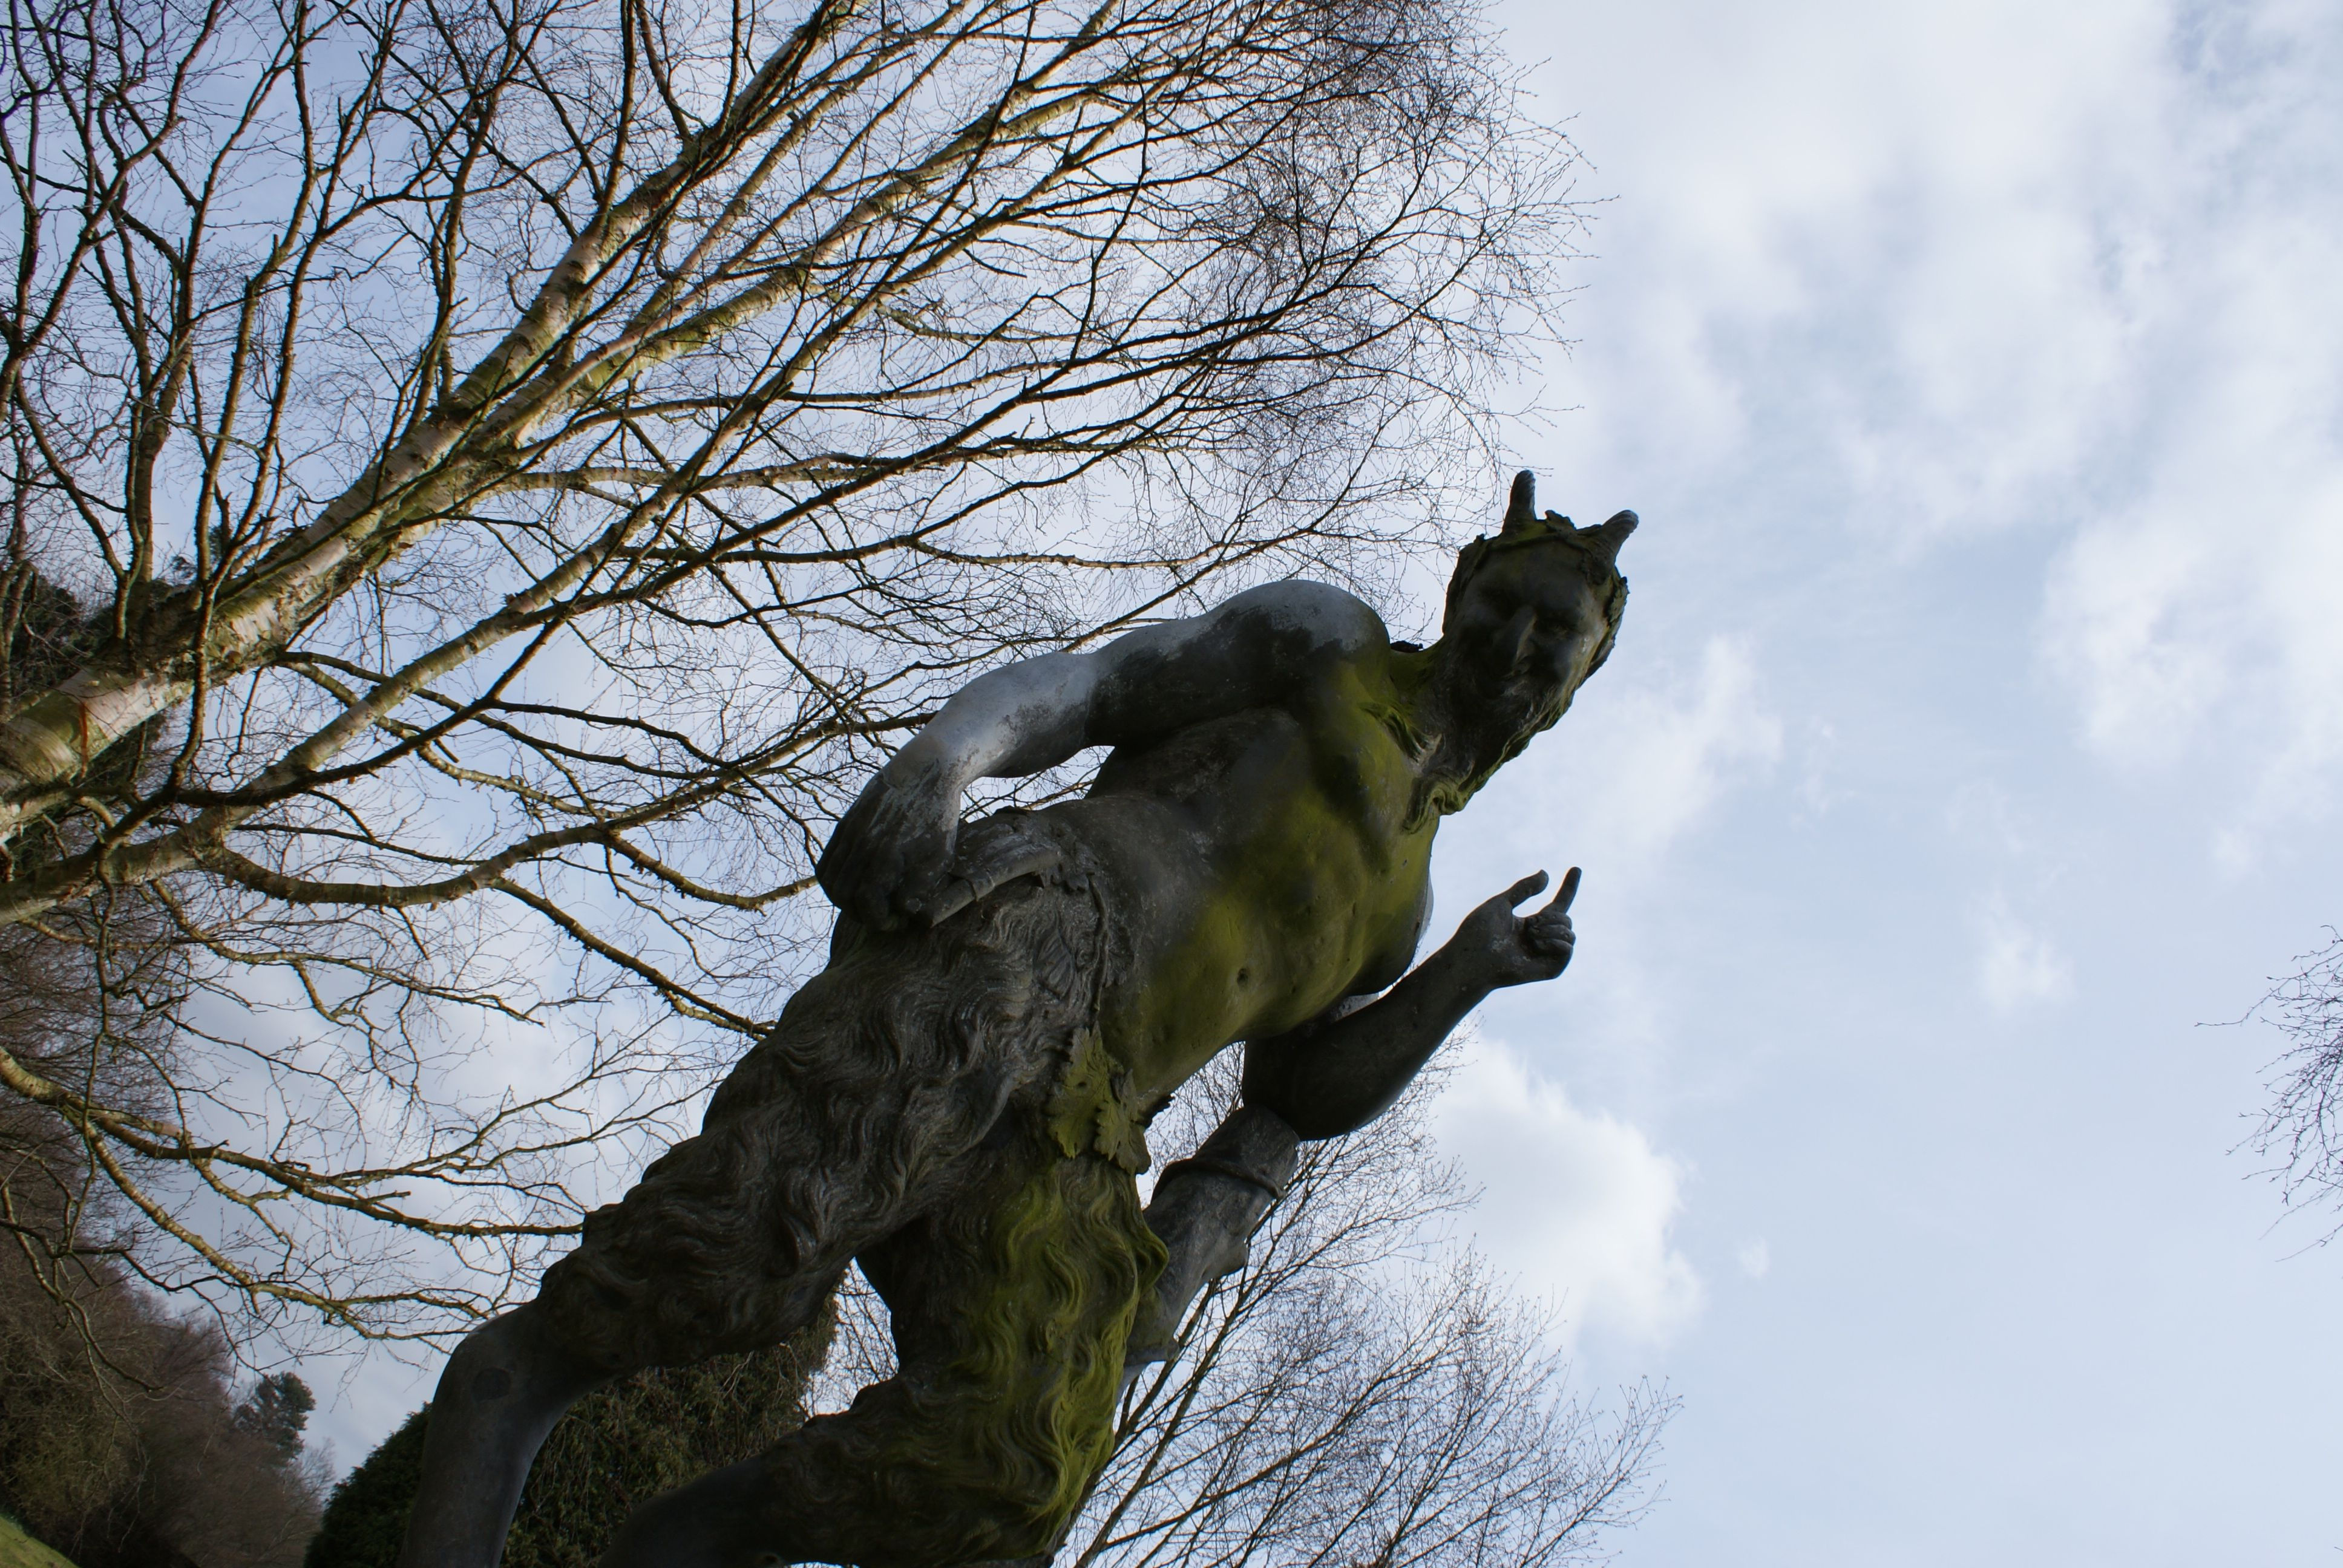 Satyr statue at Newstead Abbey.